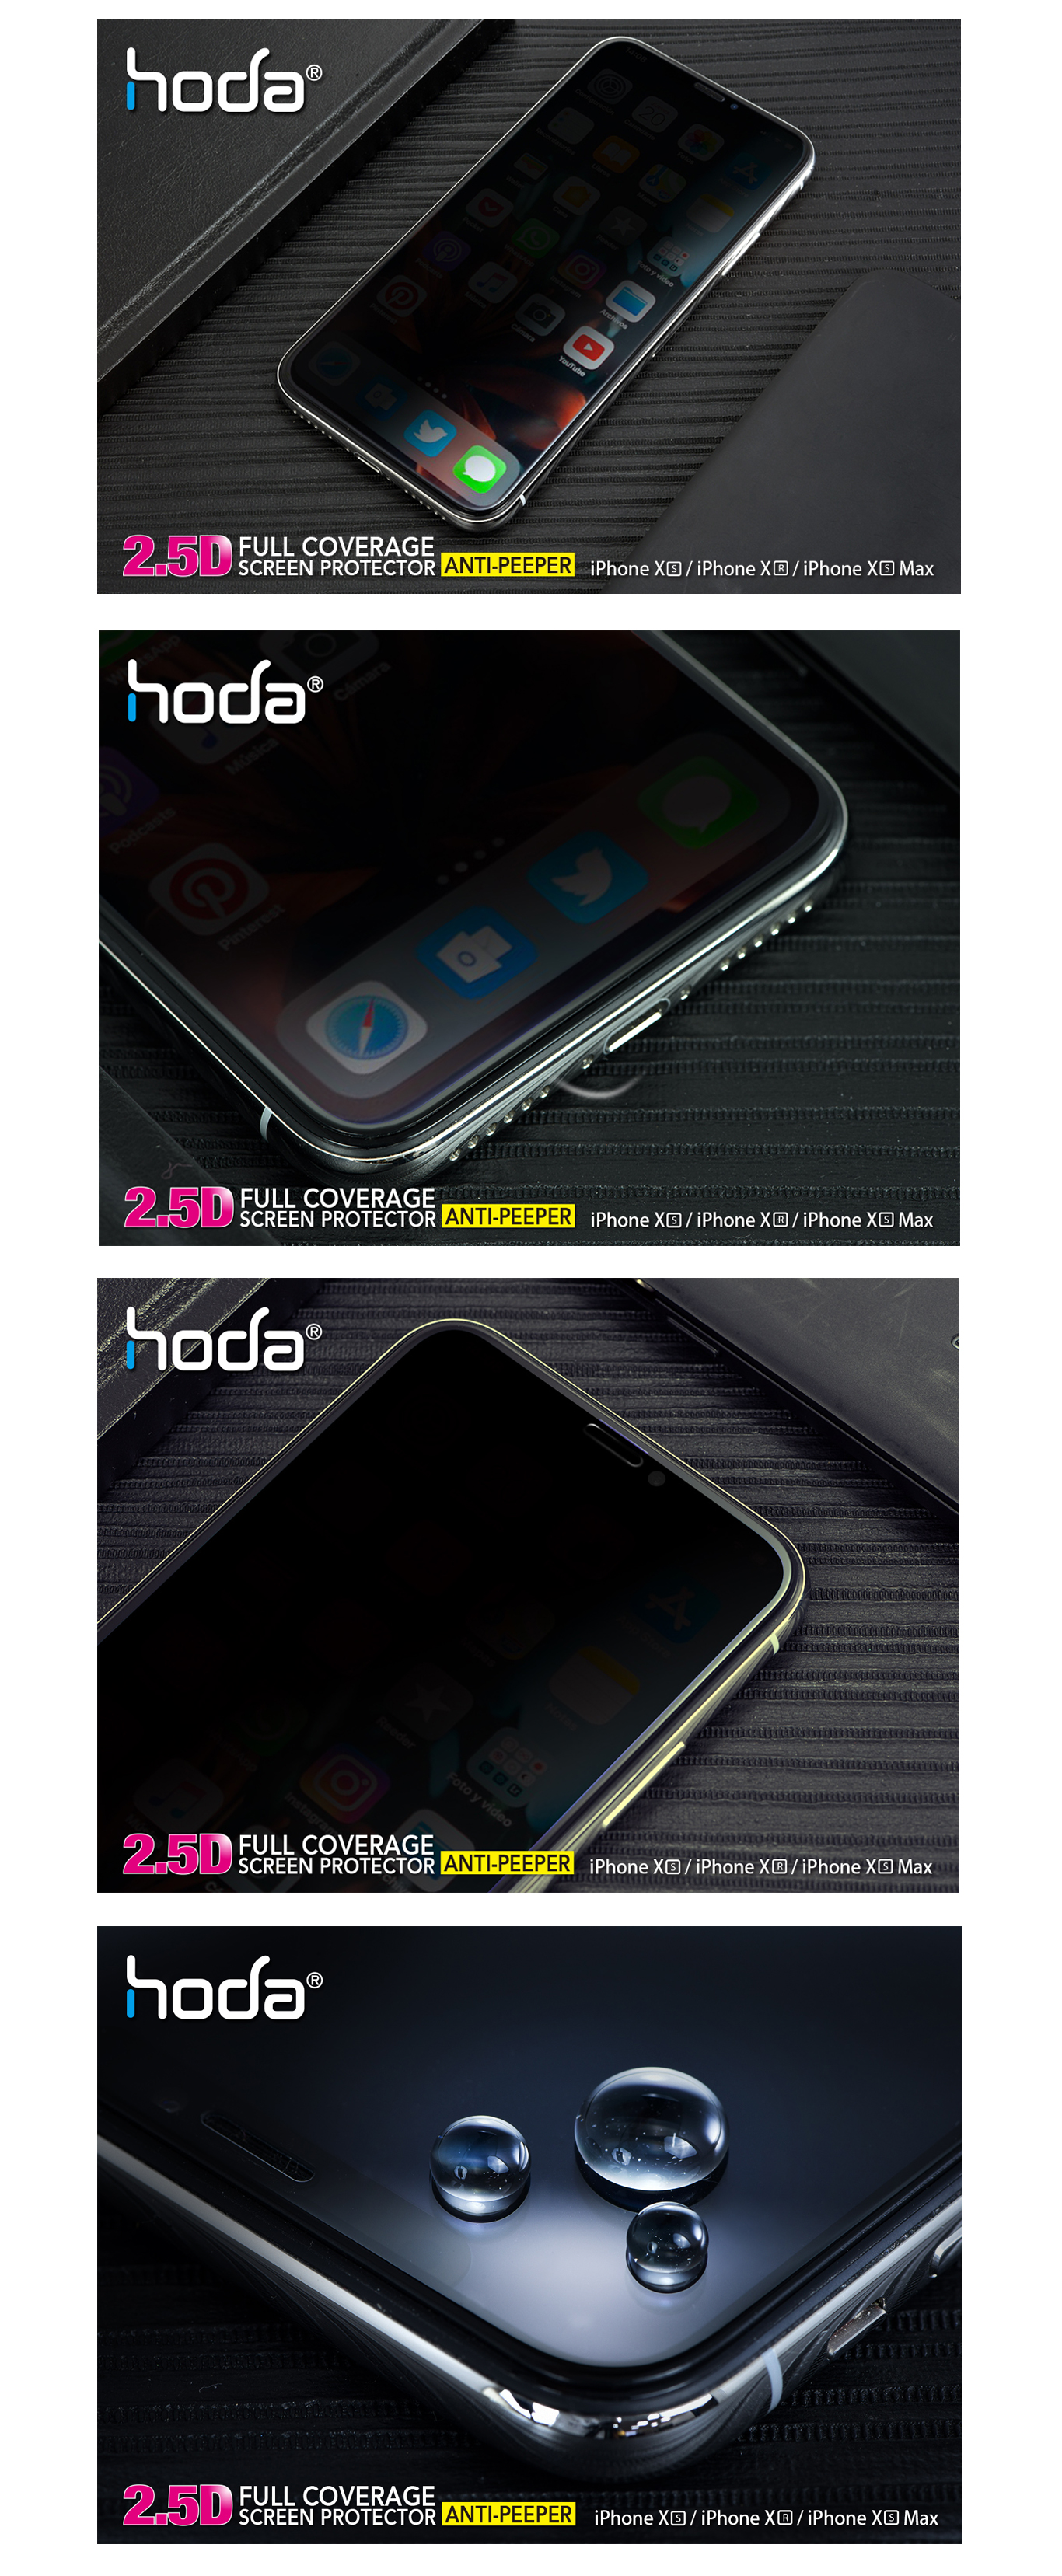 hoda-full-coverage-2.5D-0.33mm-iphone-xs-max-anti-peeper-malaysia-authorised-retailer-overview